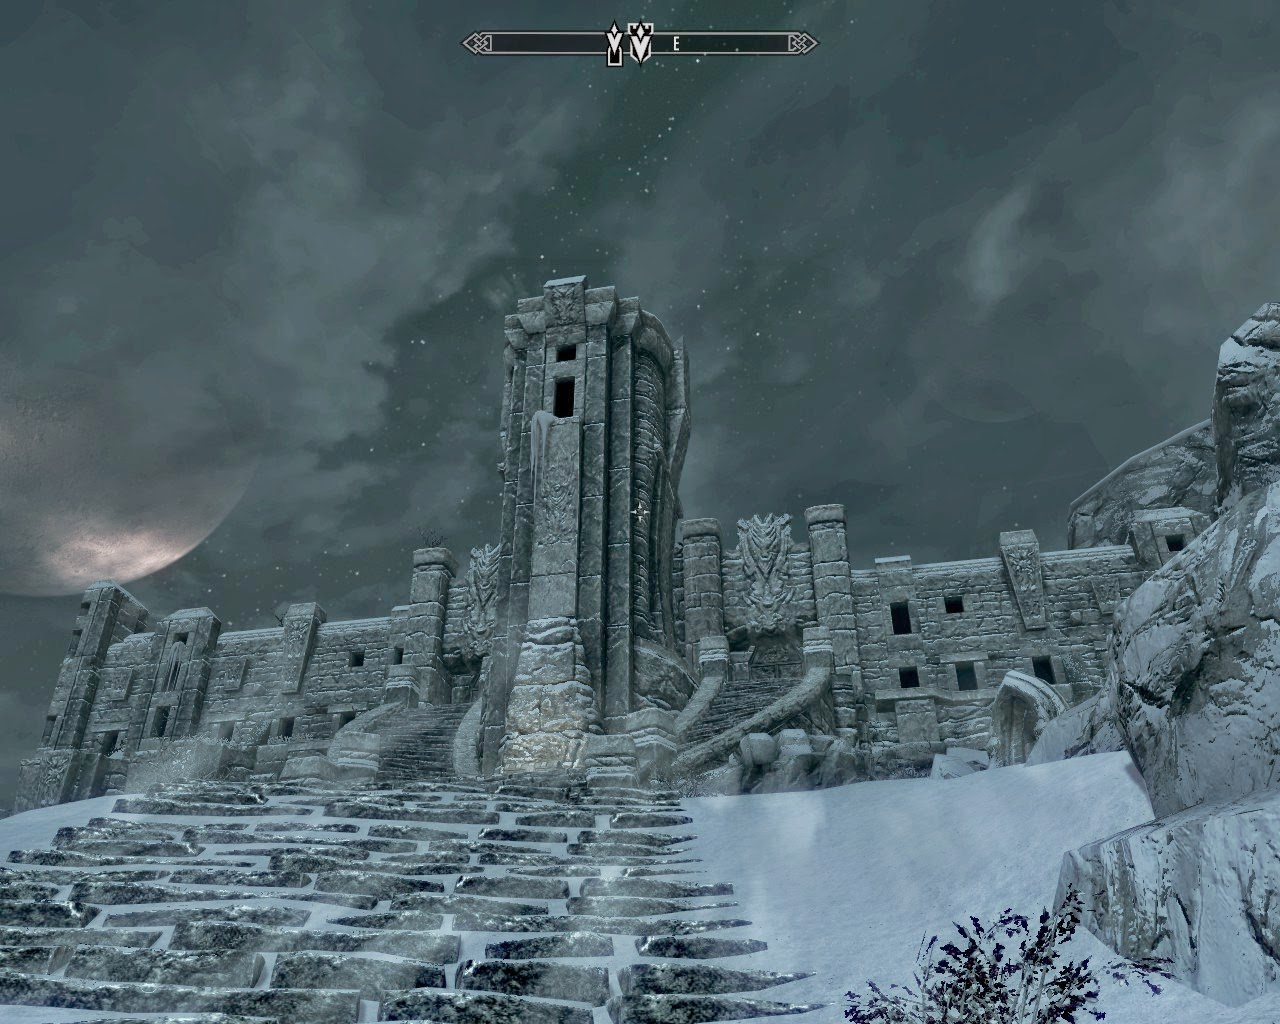 The art of architecture skyrim high hrothgar